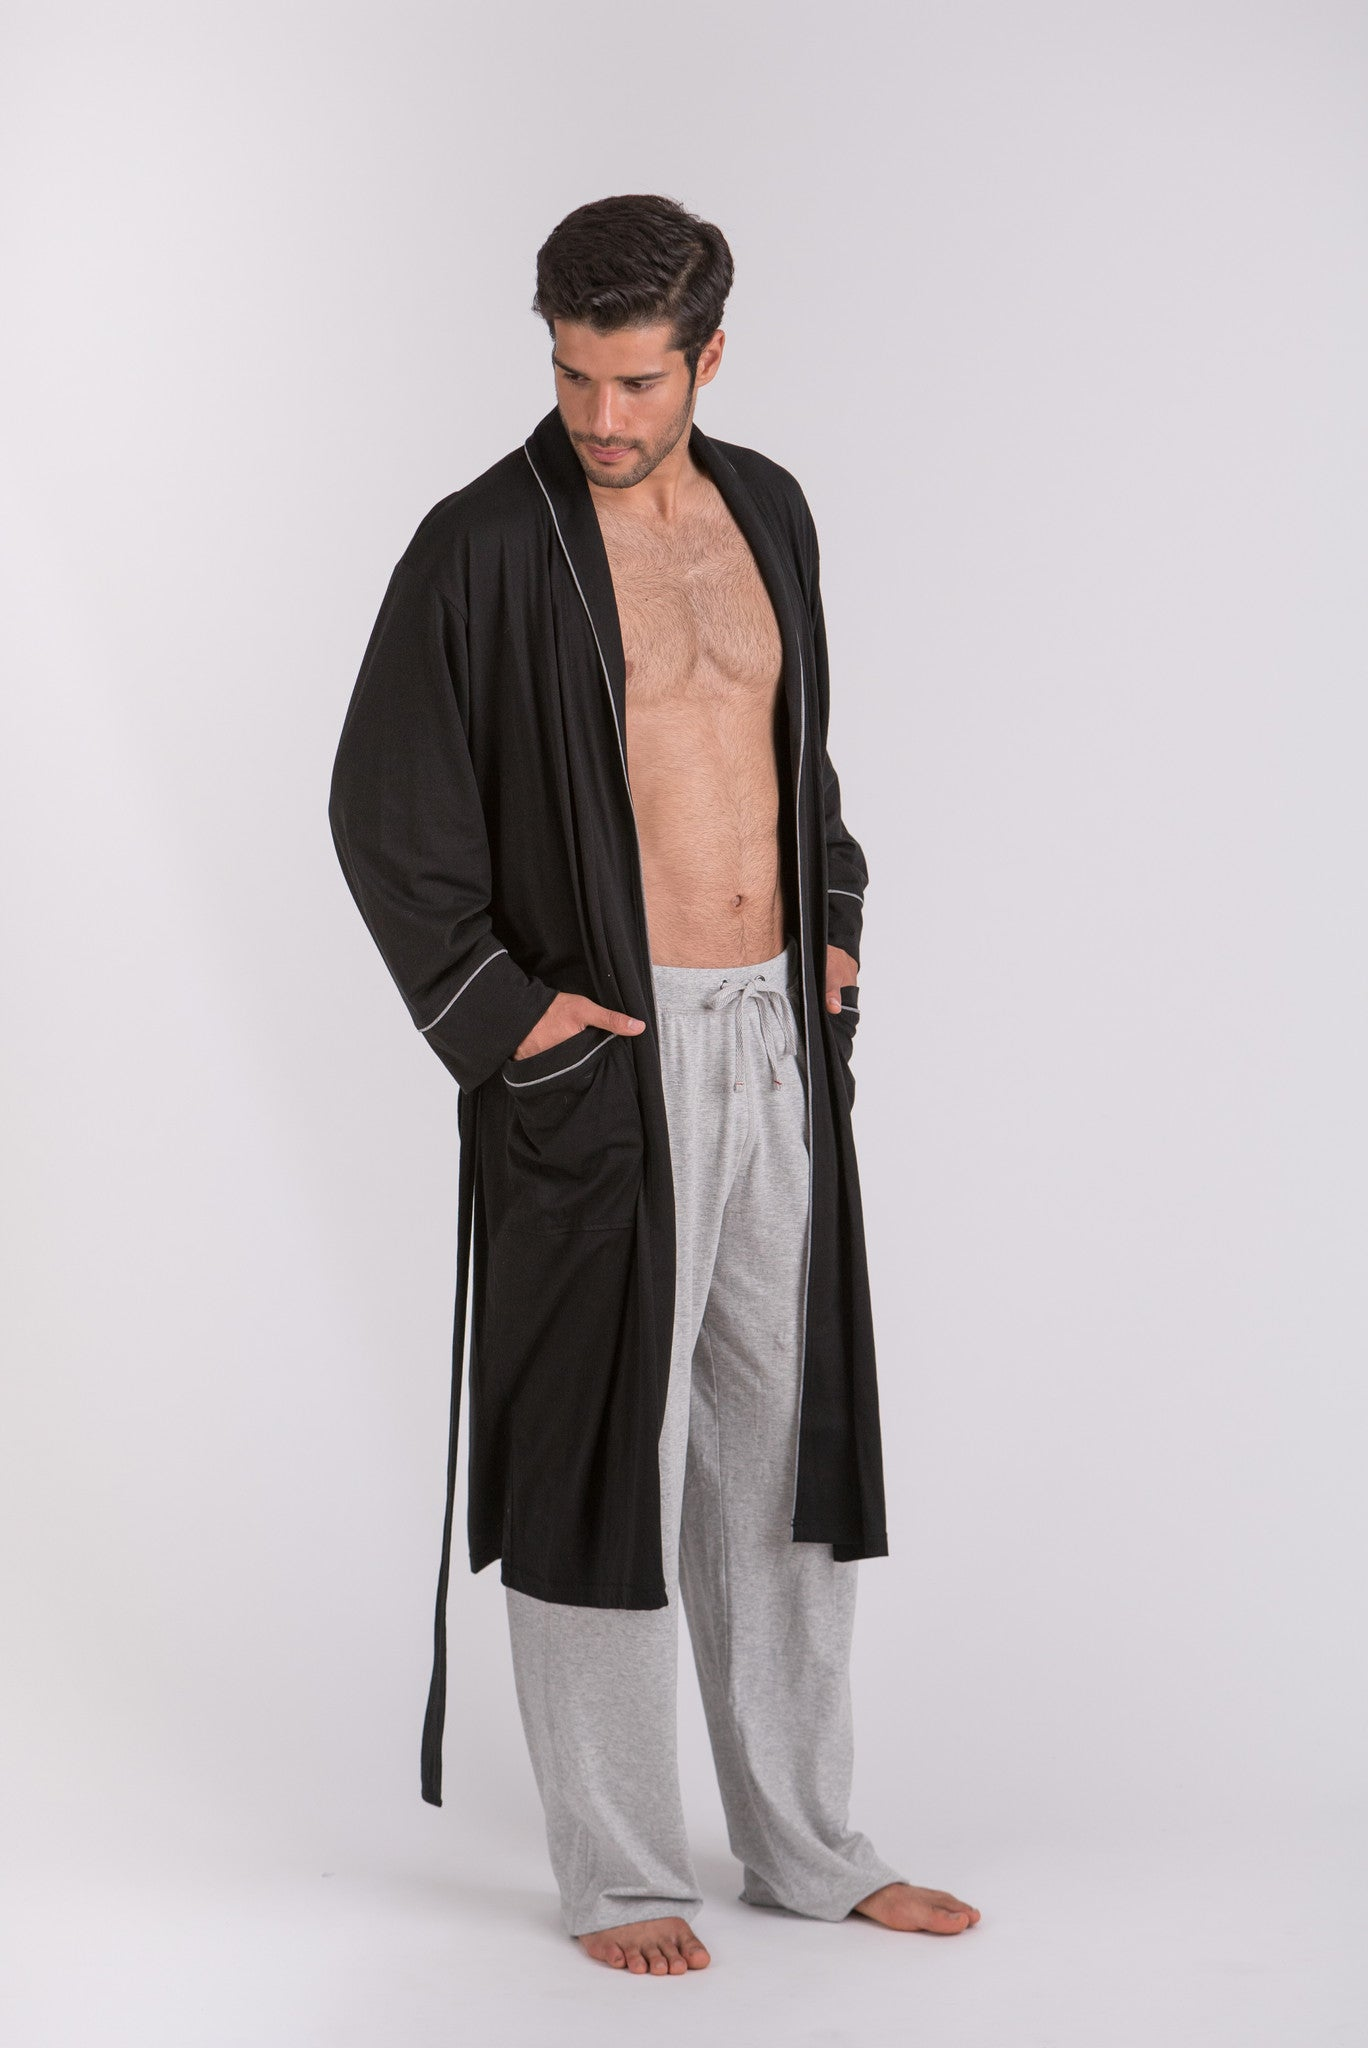 100% Peruvian Pima Cotton Replenishment Robe - <i> 4 colors available </i>